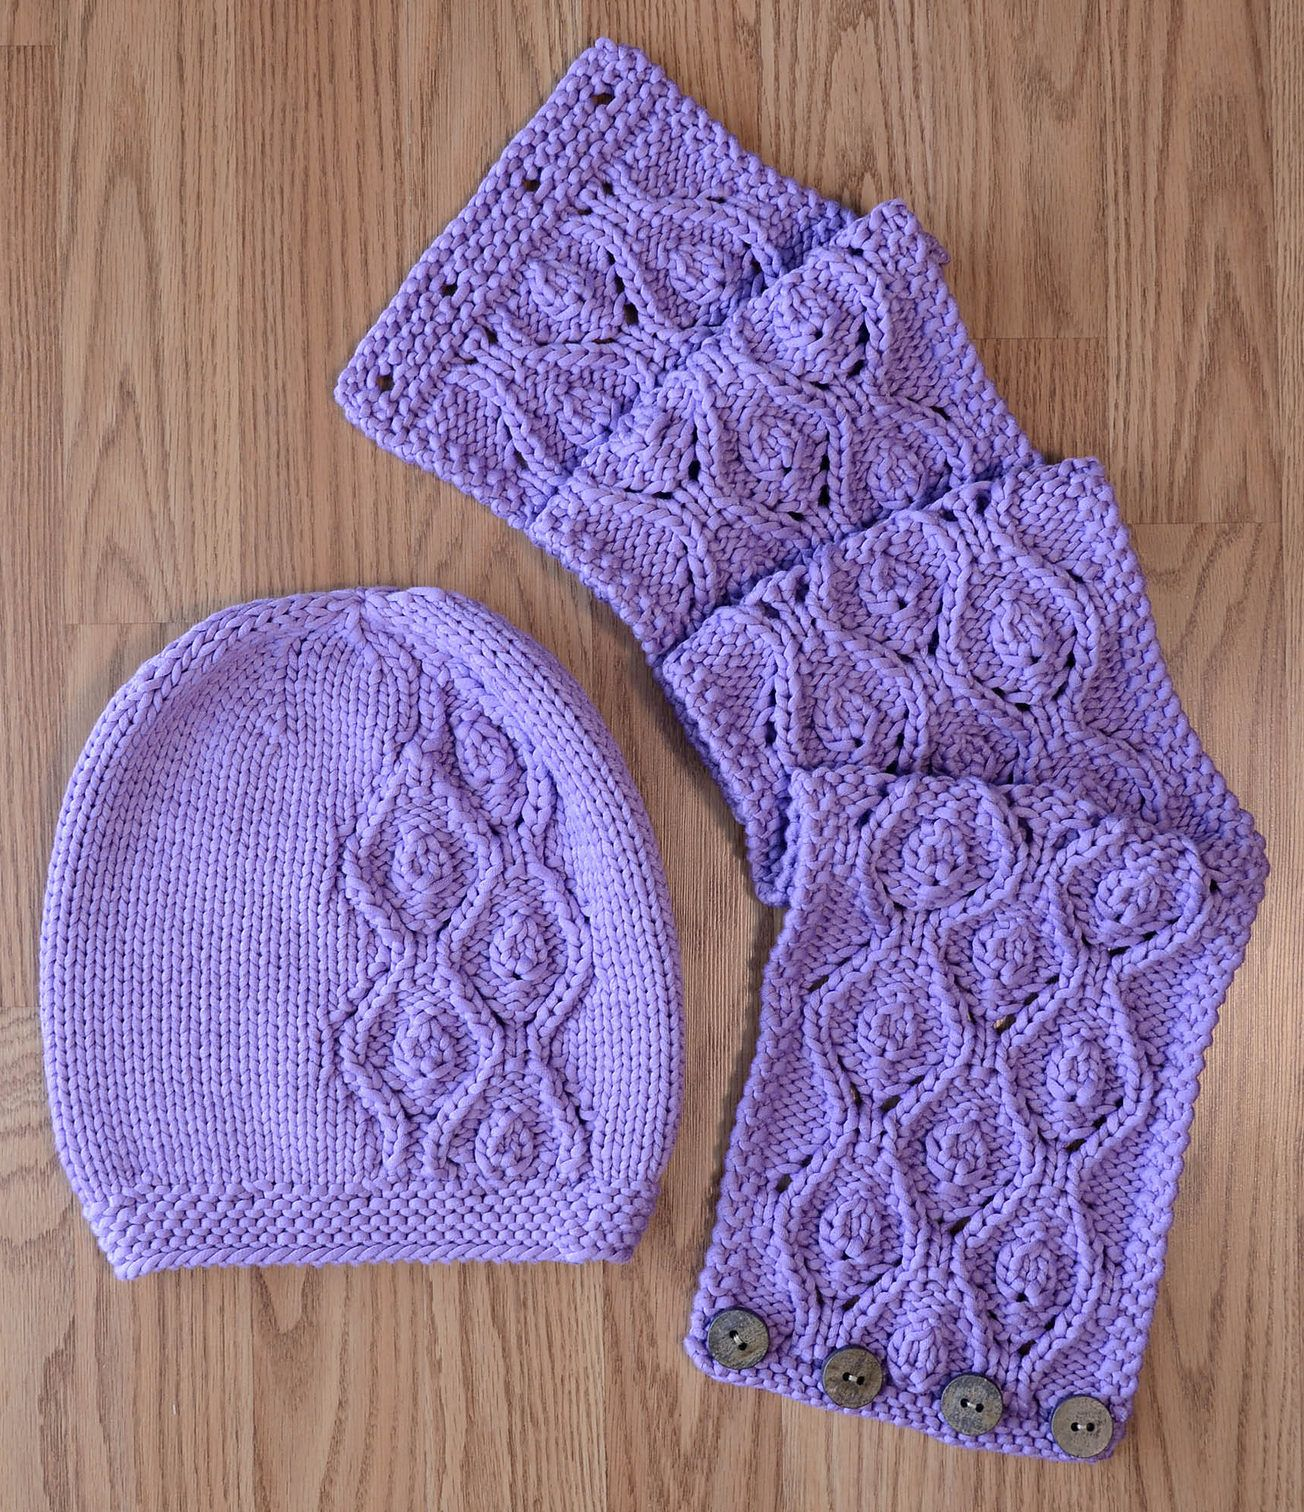 Free Knitting Pattern for Idyll Hat and Cowl Set - Flowing lace ...